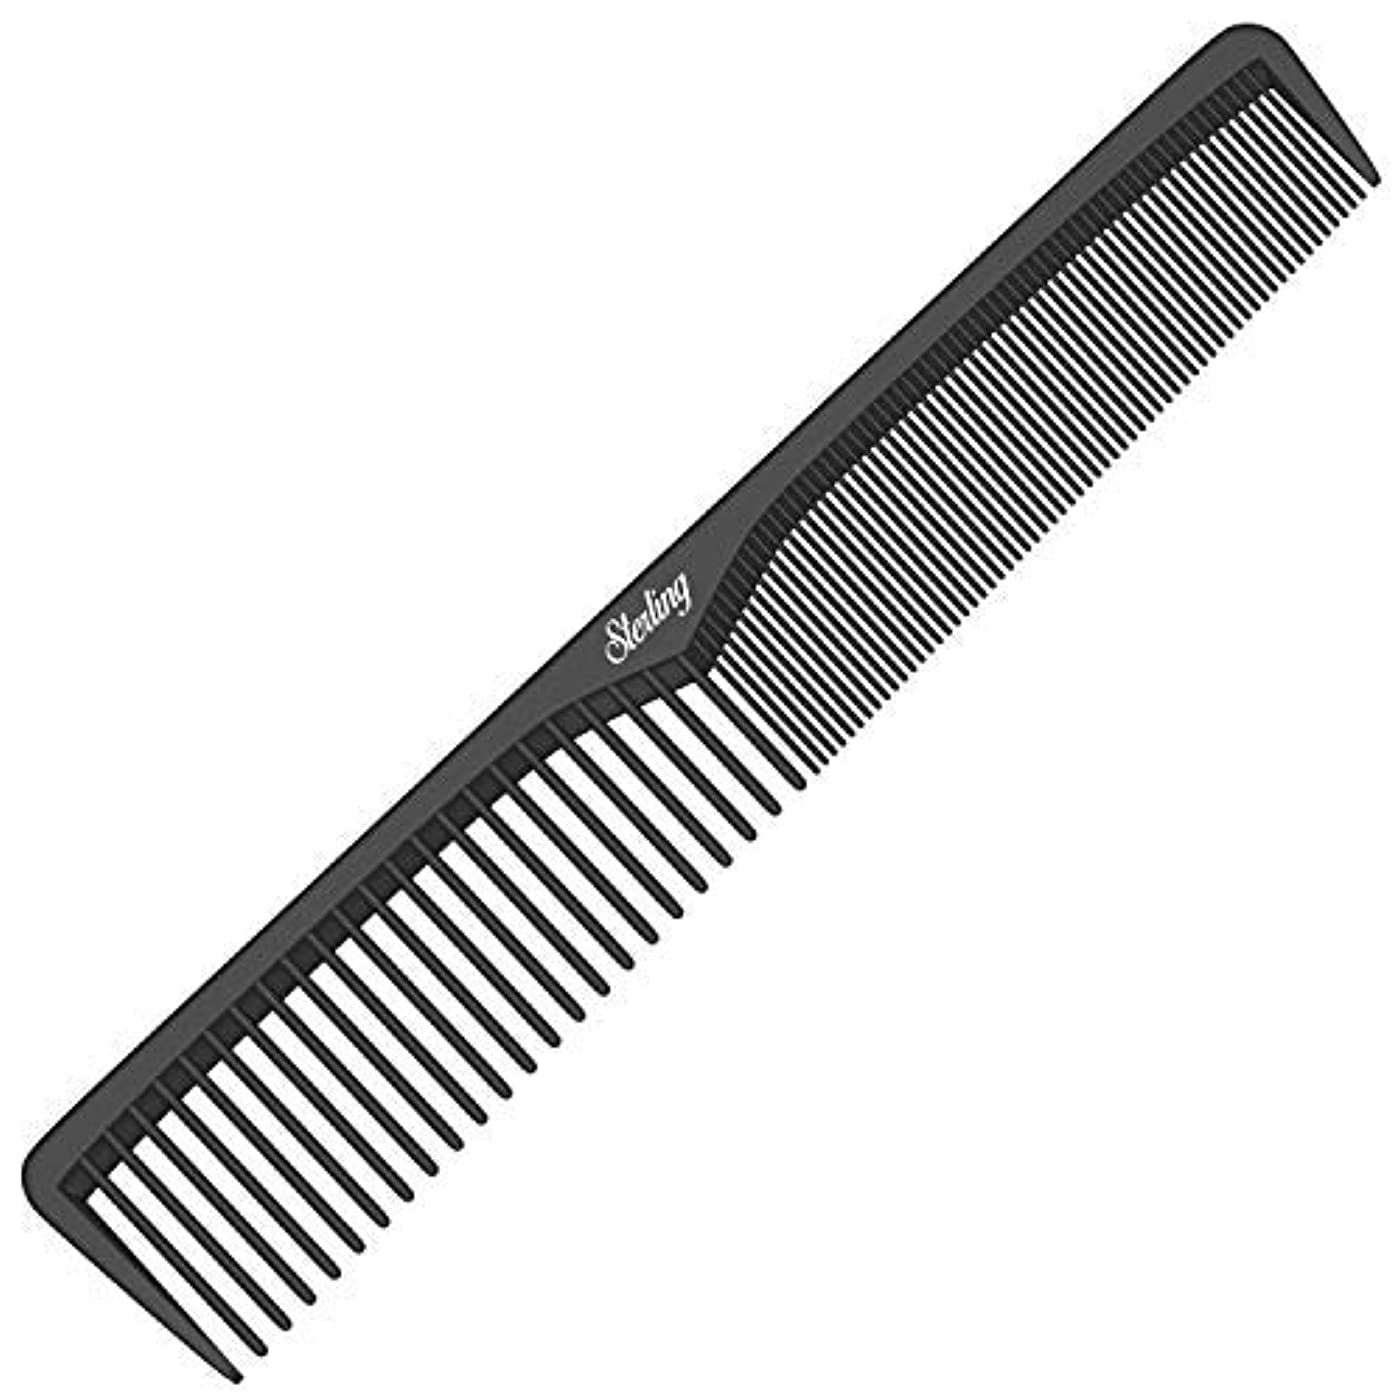 ズームインする進捗すみませんStyling Comb | Professional 7  Black Carbon Fiber Anti Static Chemical And Heat Resistant Comb For All Hair Types...